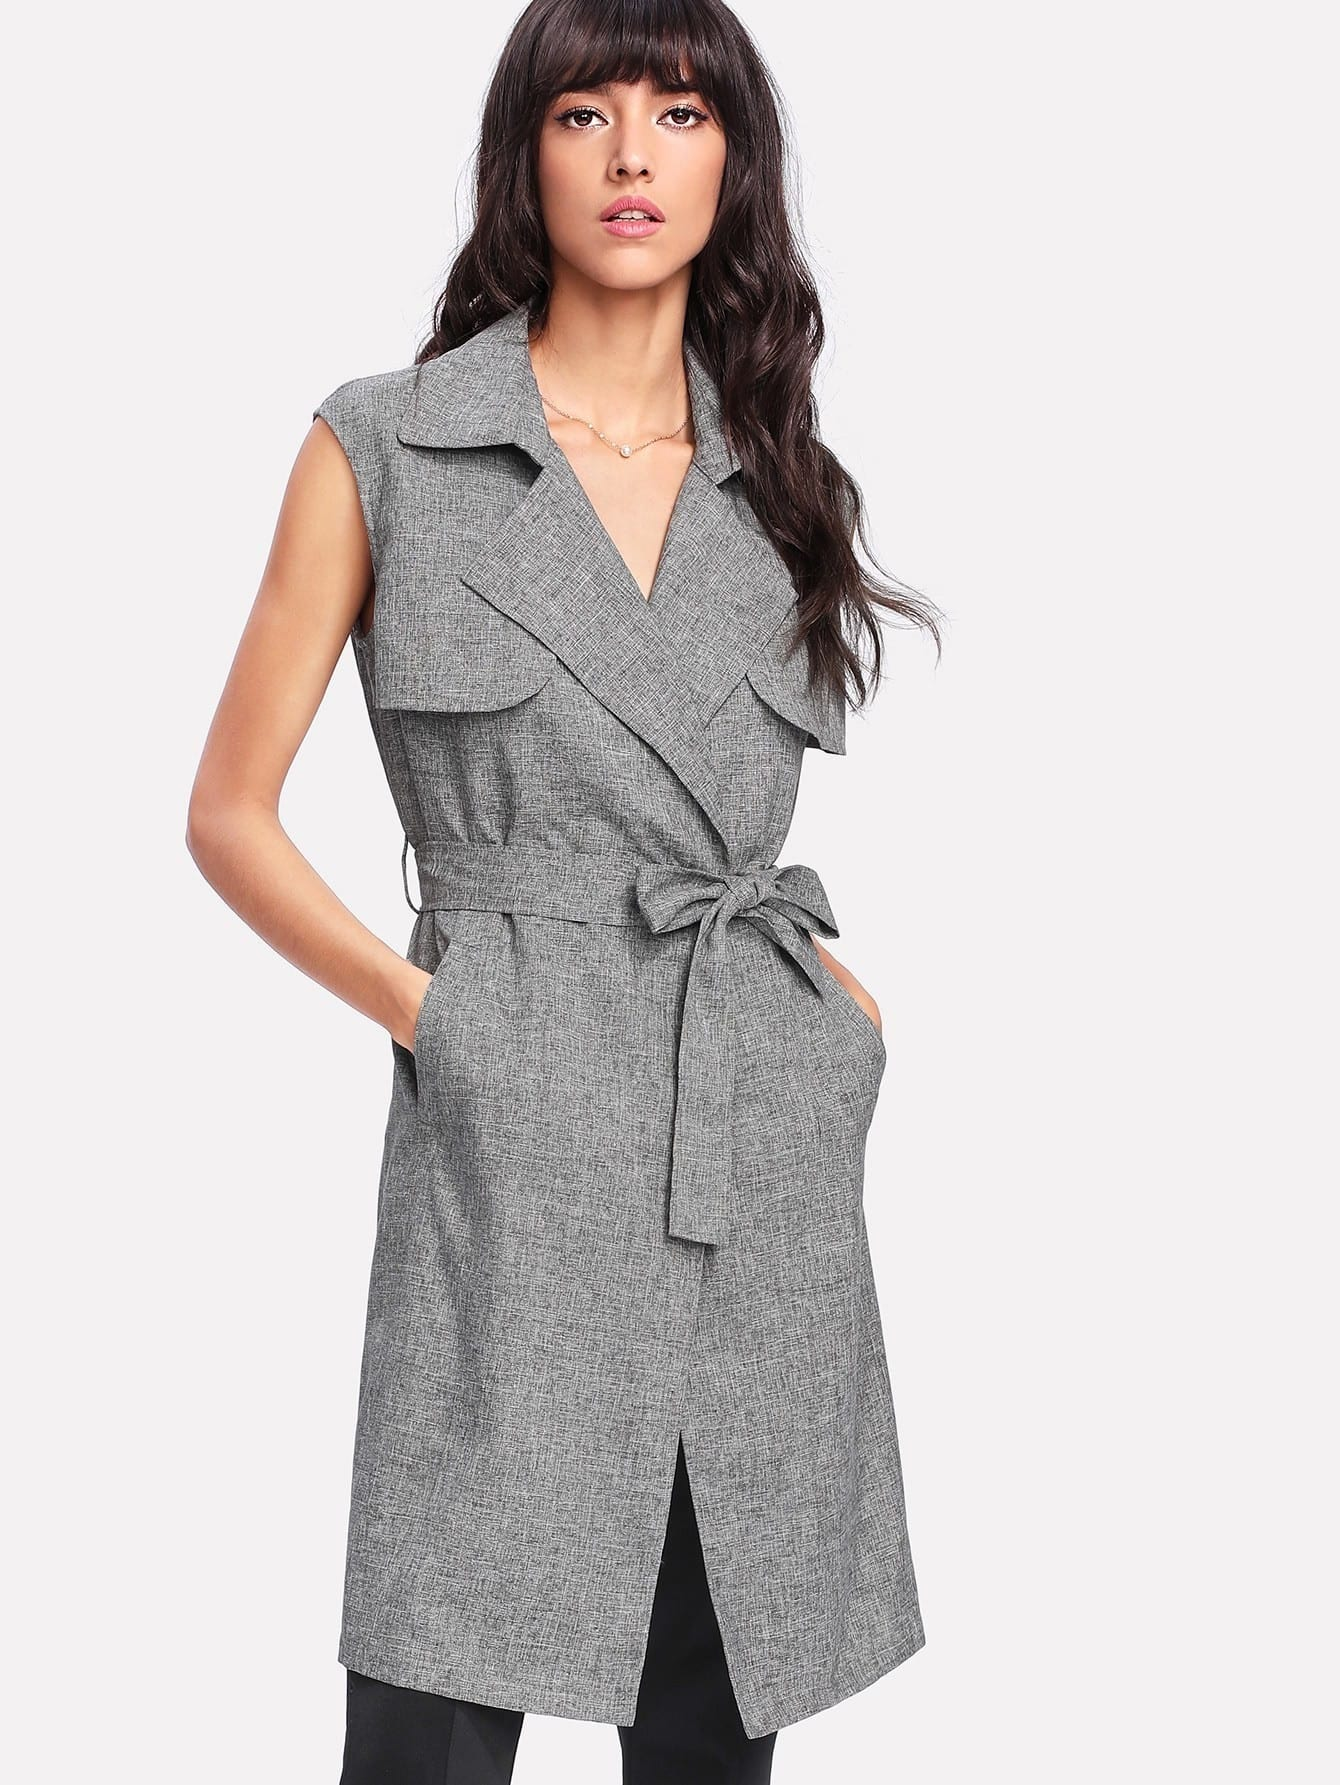 Flap Front Self Belted Sleeveless Trench Coat drape front belted skater suede coat